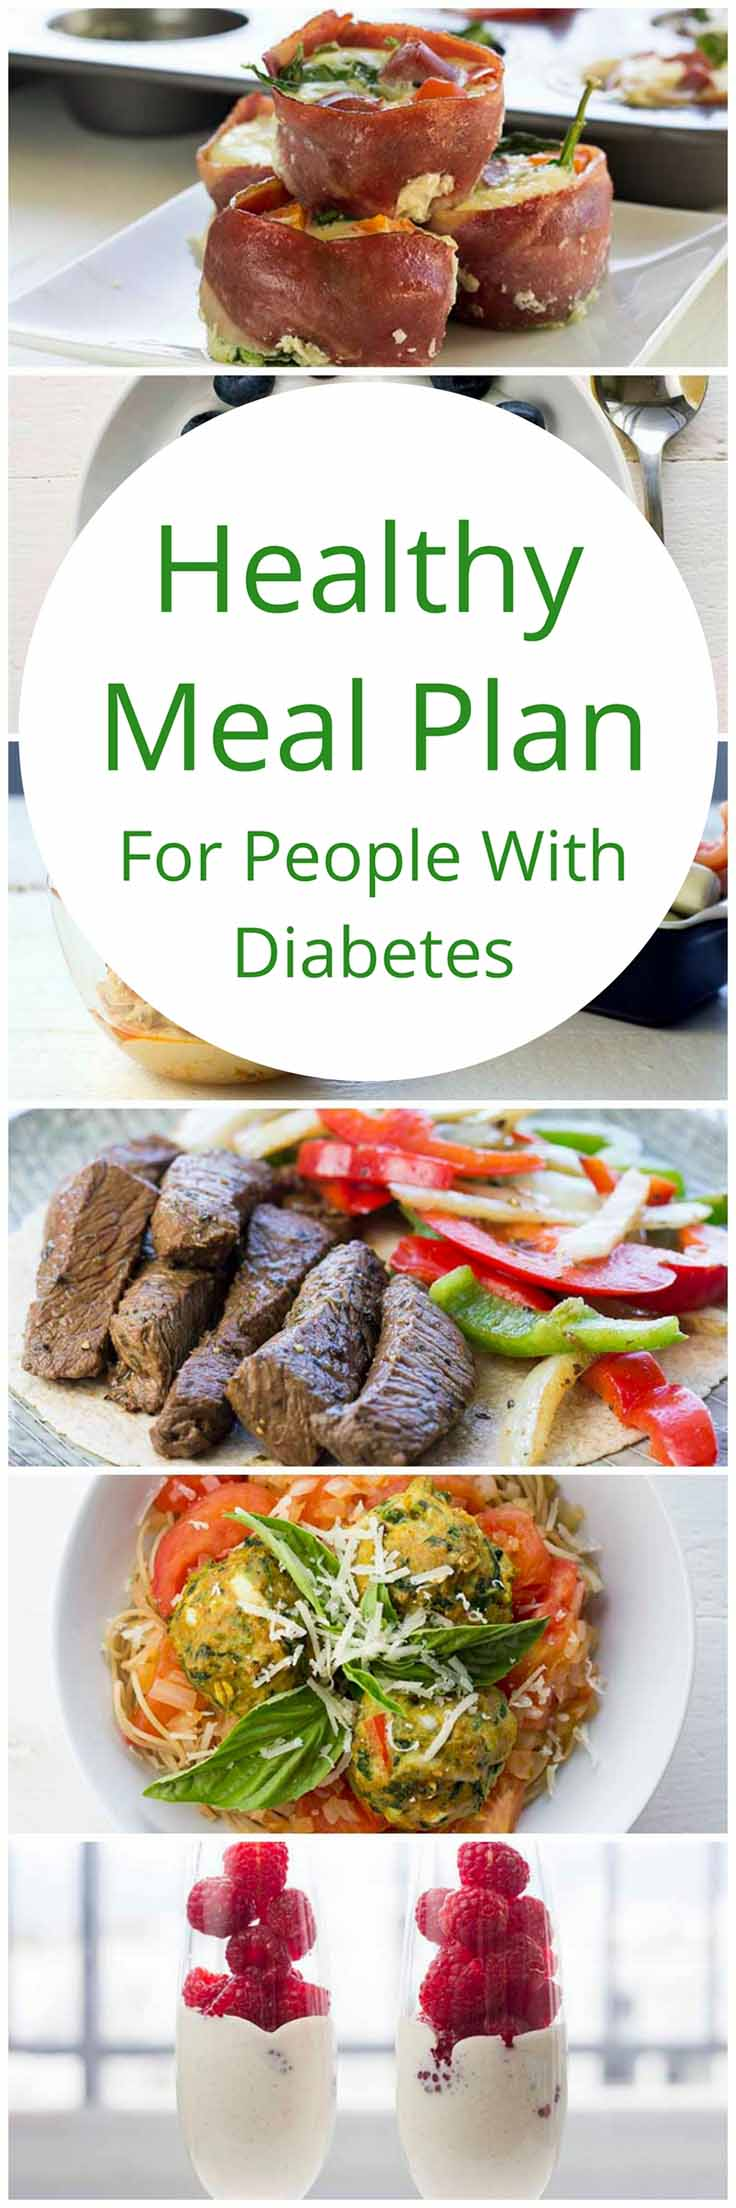 Healthy meal plan for people with diabetes  | high protein | low carb | sugar free | gluten free | diabetes friendly | Paleo |